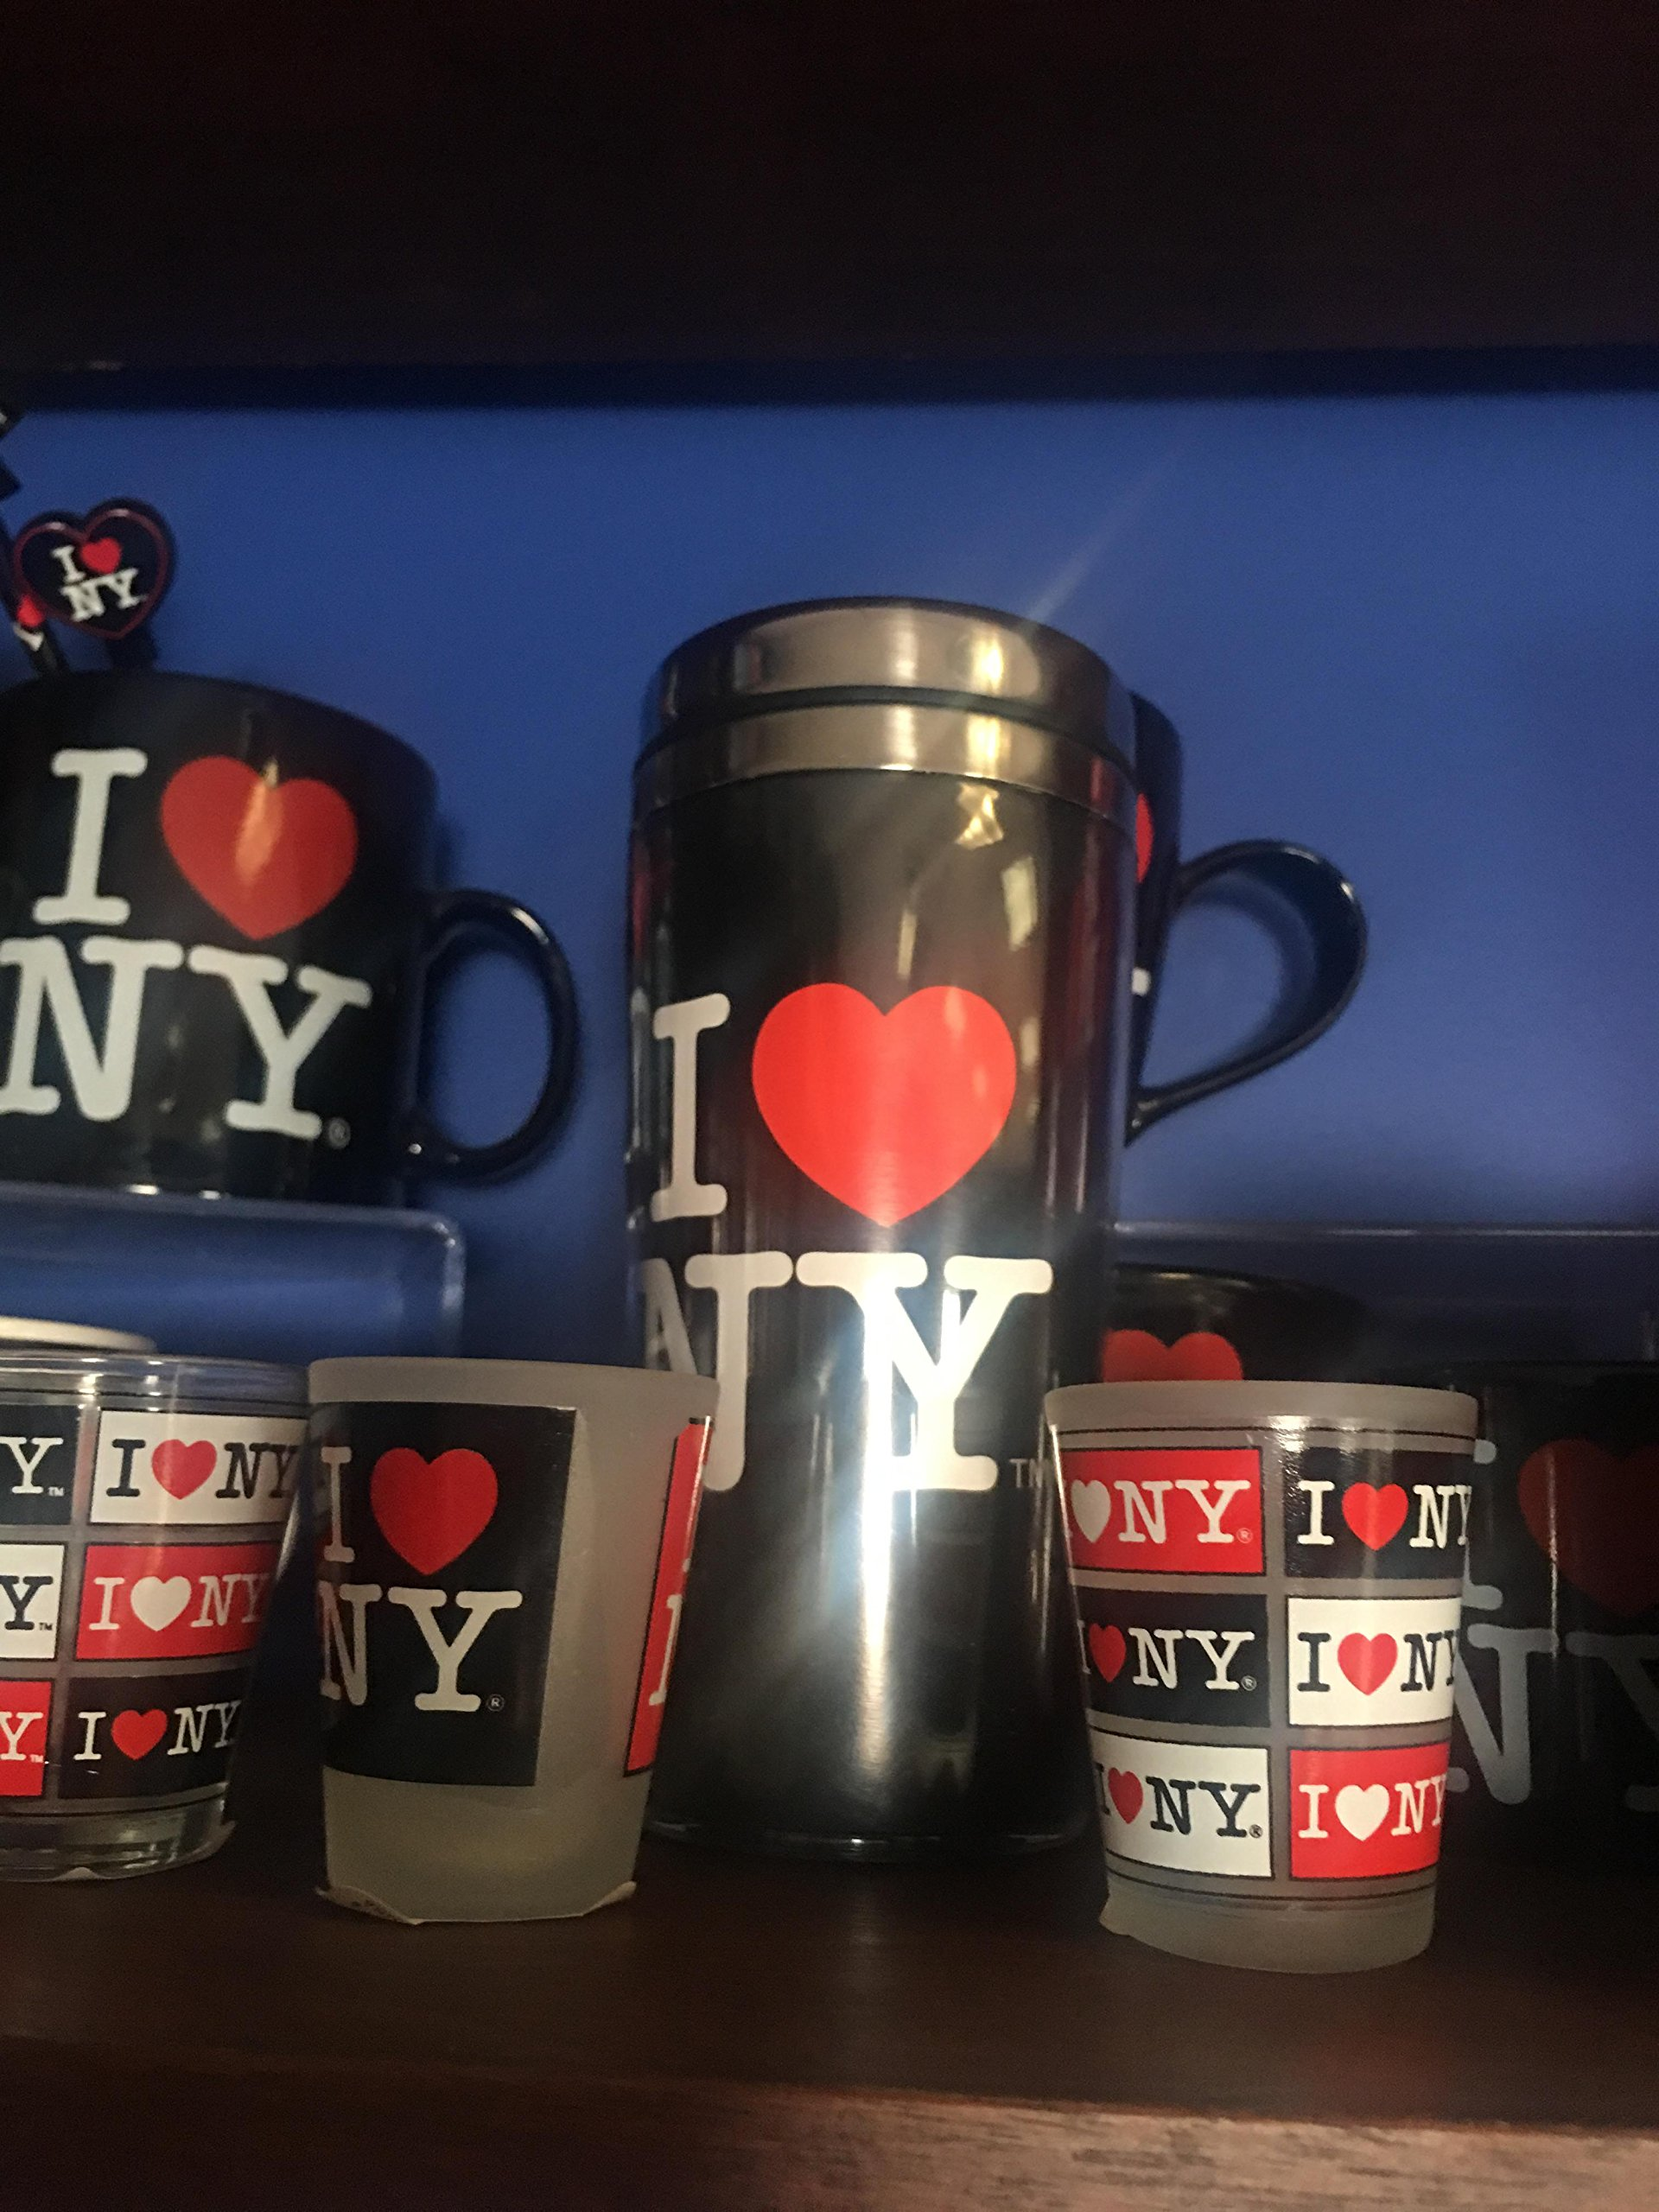 Citydreamshop's I Love New York Large Black Travel Mug Perfect souvenir Travel mug for Iced Coffee in Summer and a Hot beverage in winter